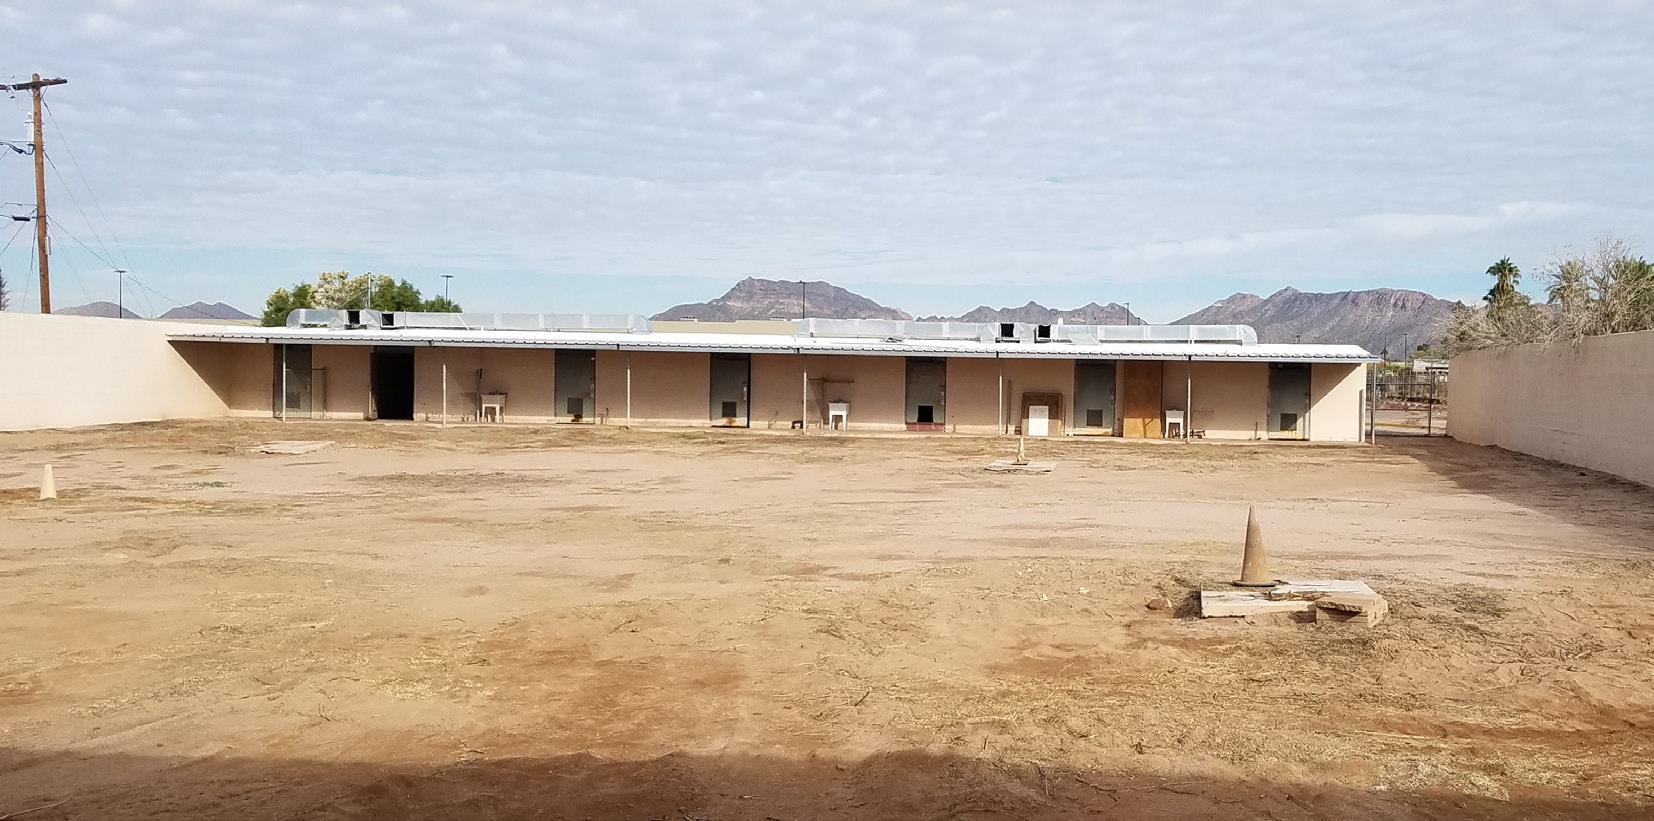 486 S Desert View Dr, Apache Junction AZ 85120 Residential Land